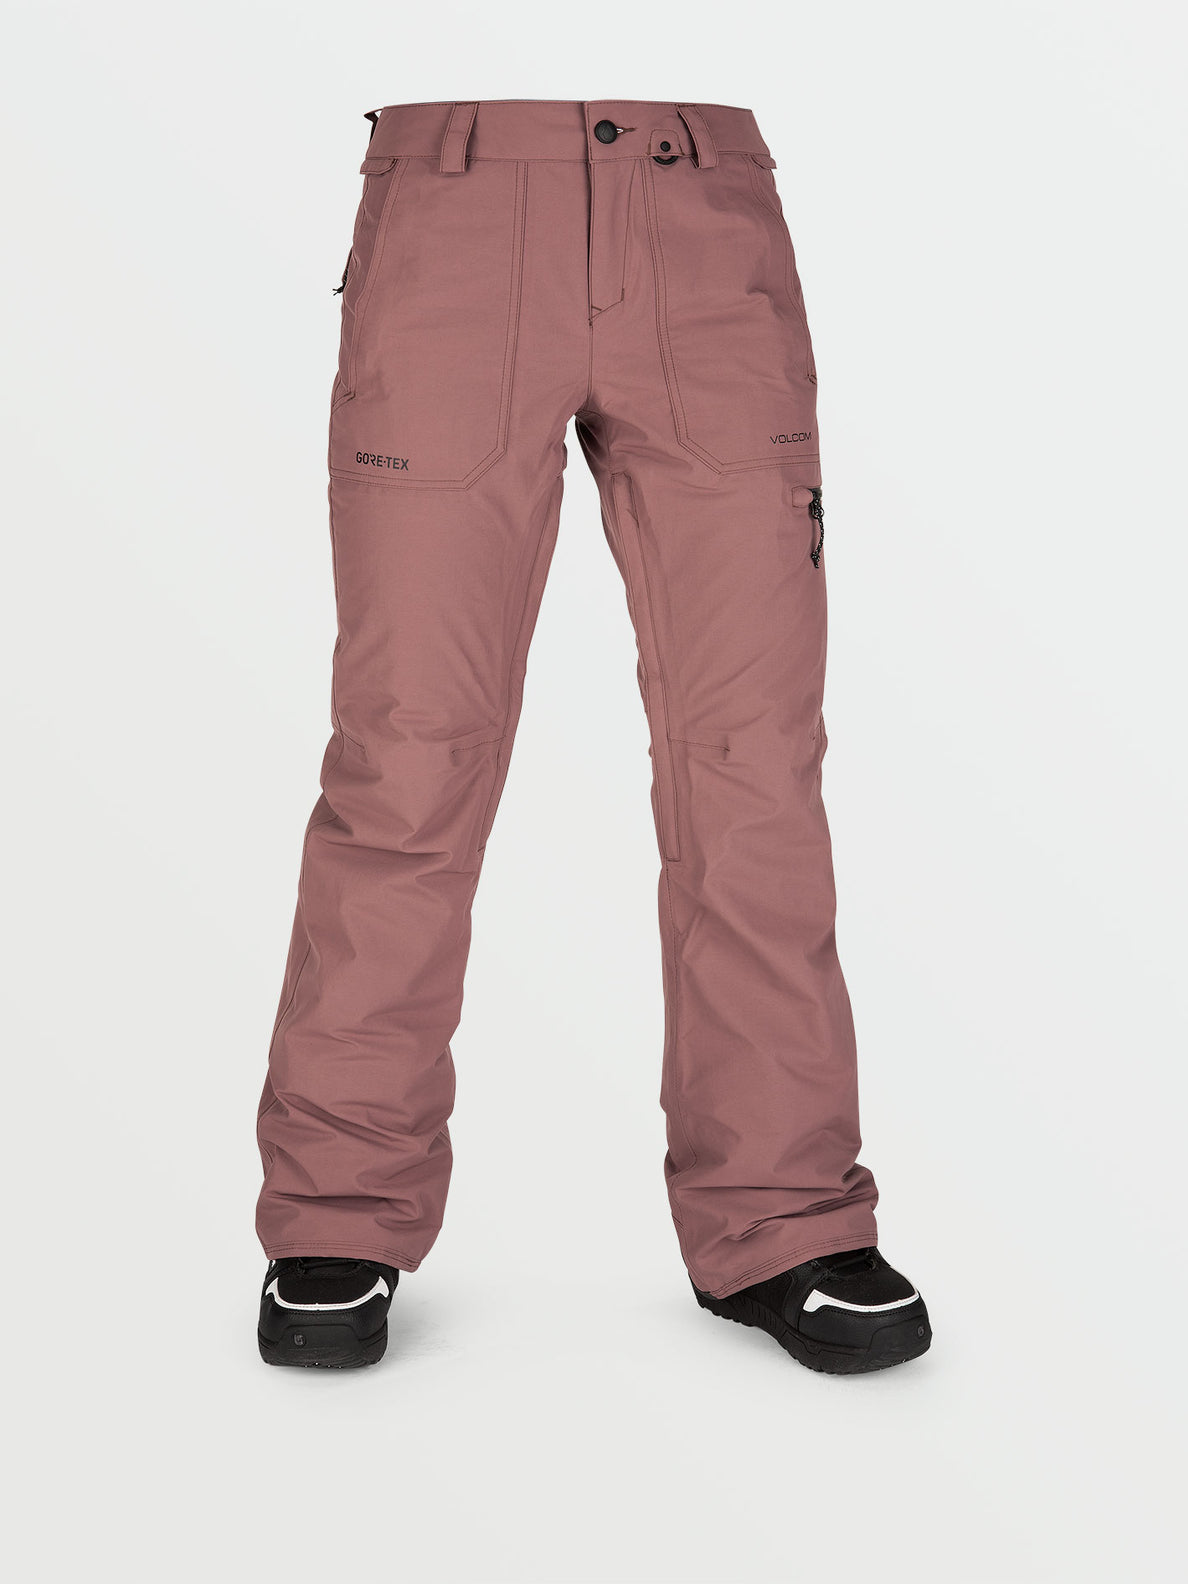 KNOX INS GORE-TEX PANT - ROSE WOOD (H1252100_ROS) [F]